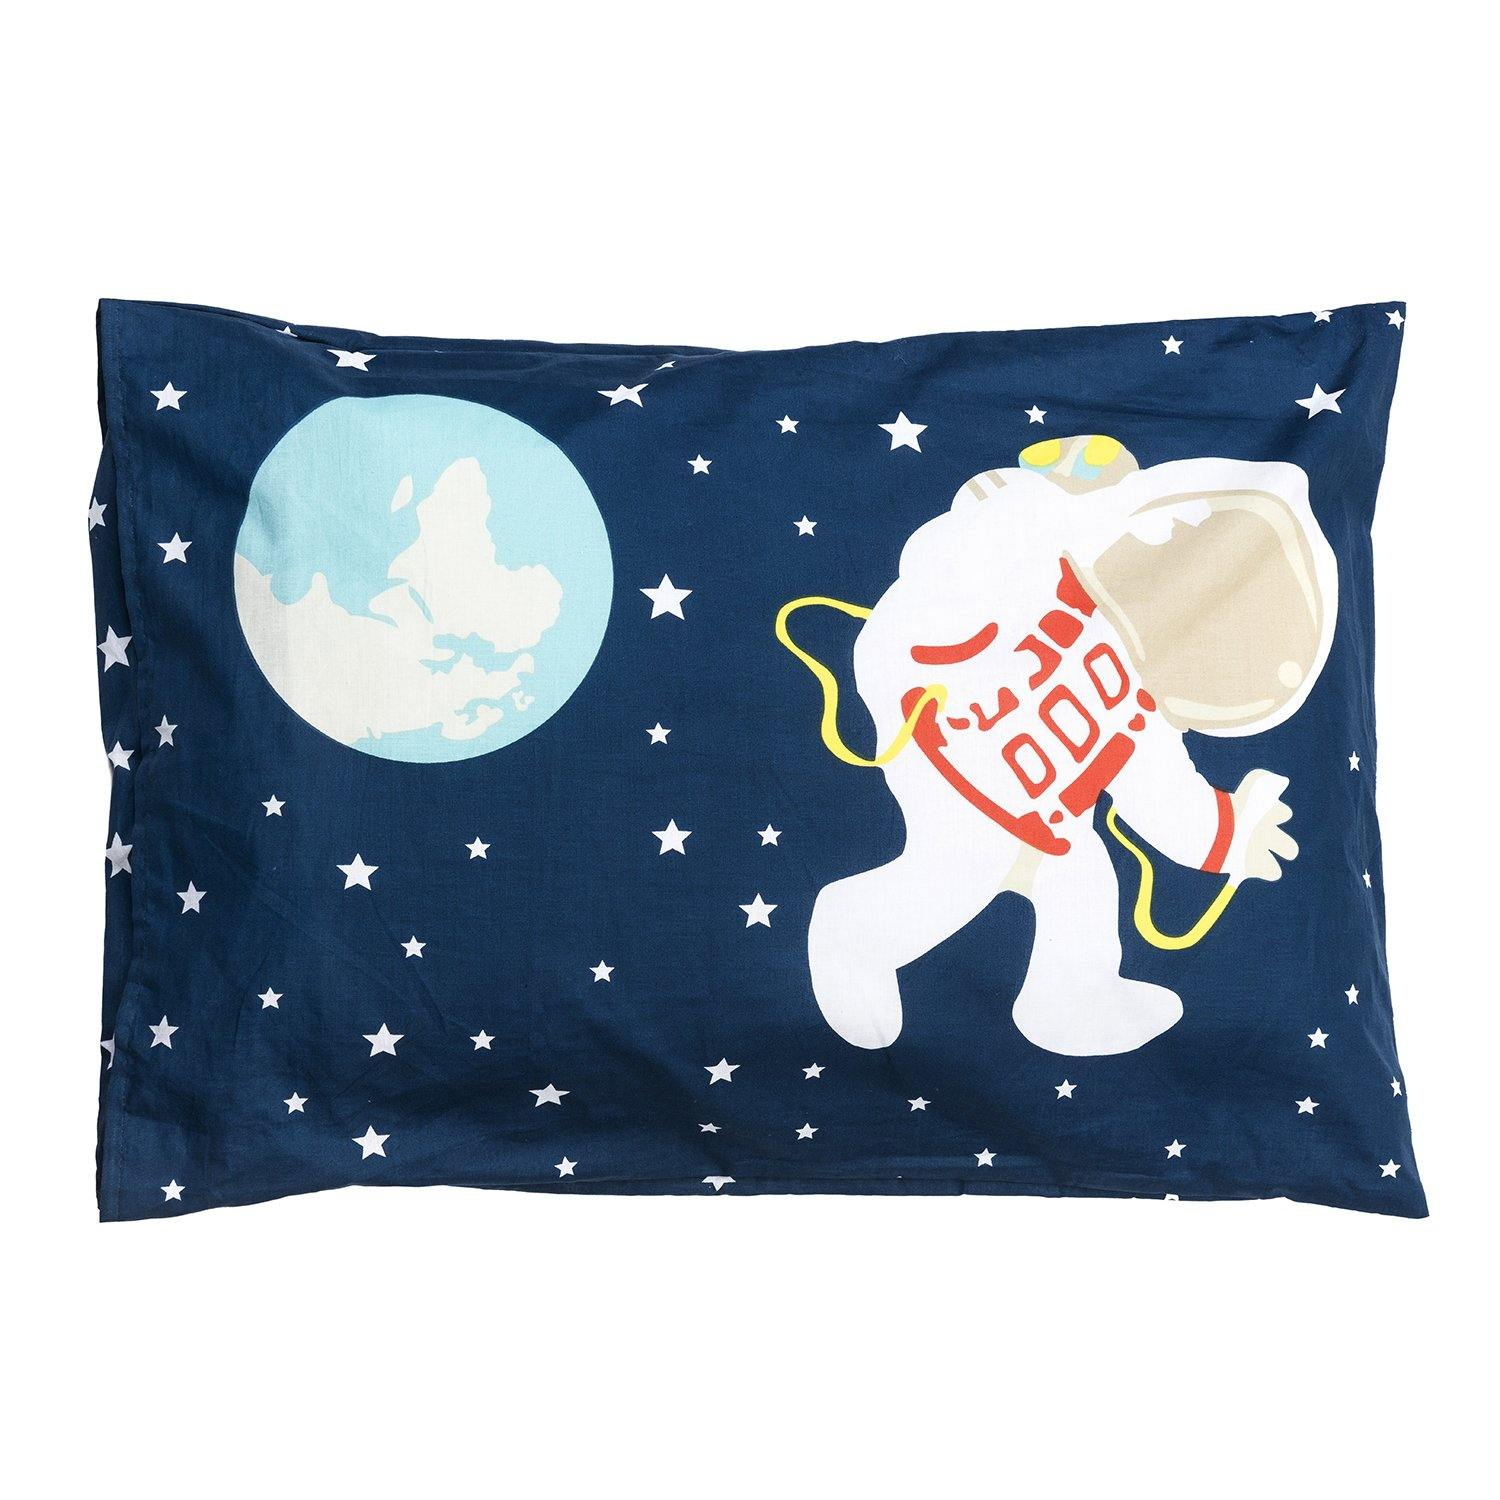 Space pillowcase 1